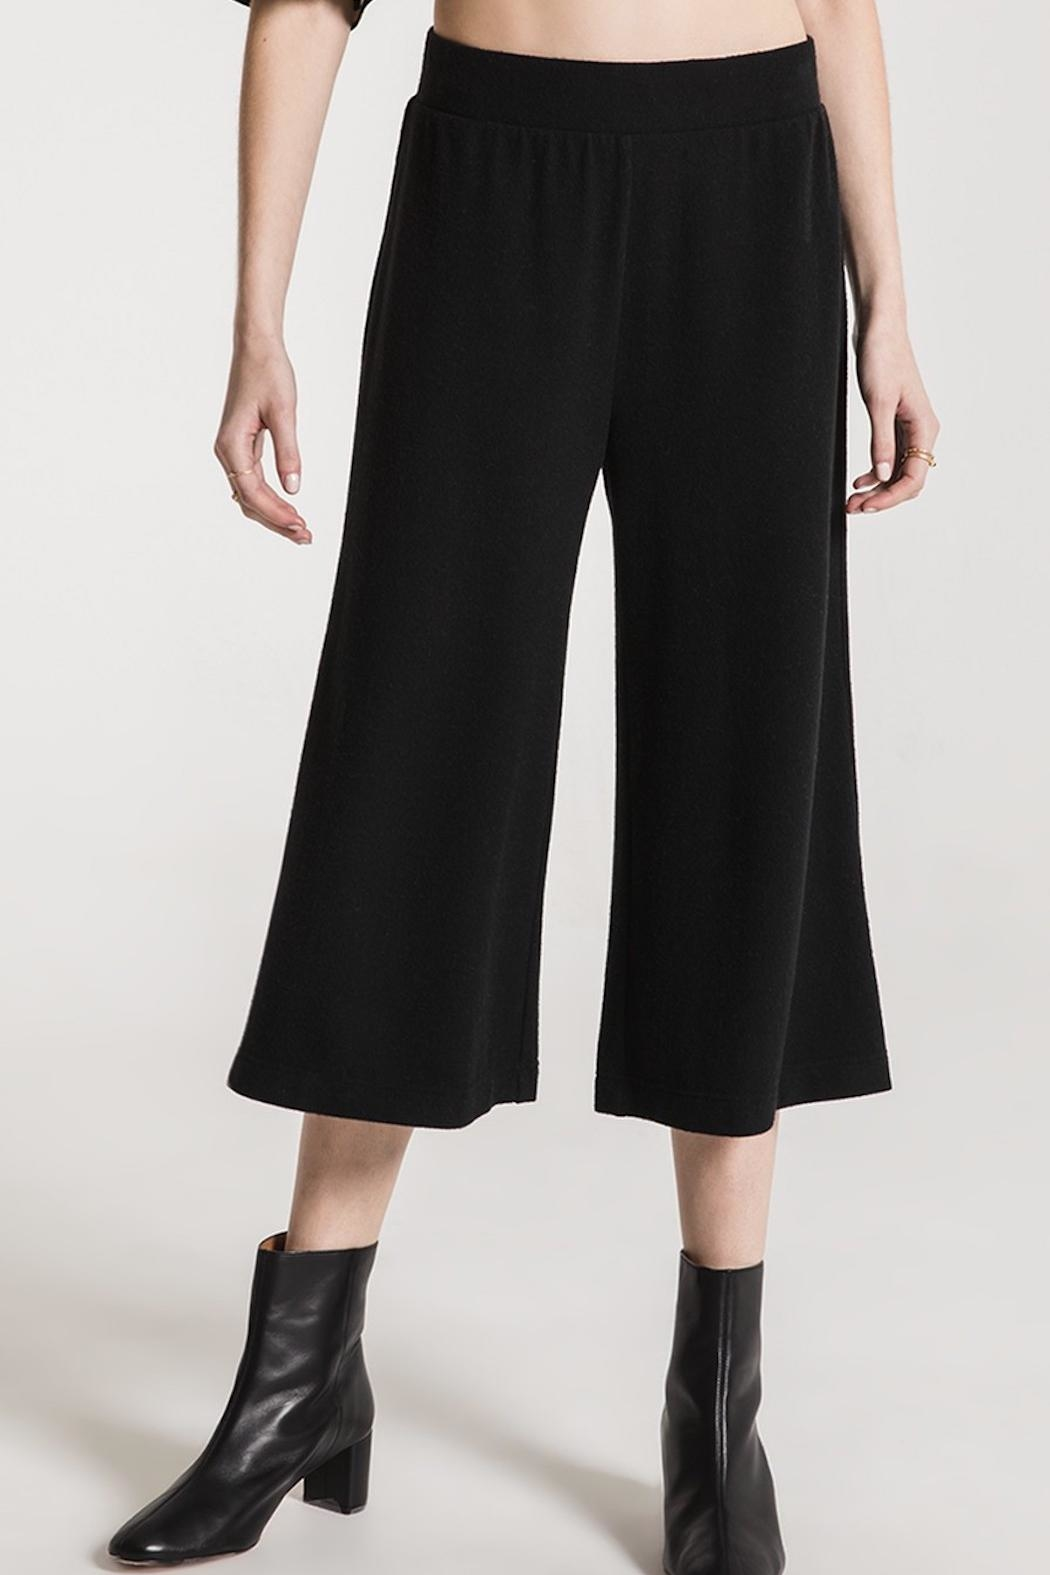 z supply Soft Knit Culottes - Side Cropped Image